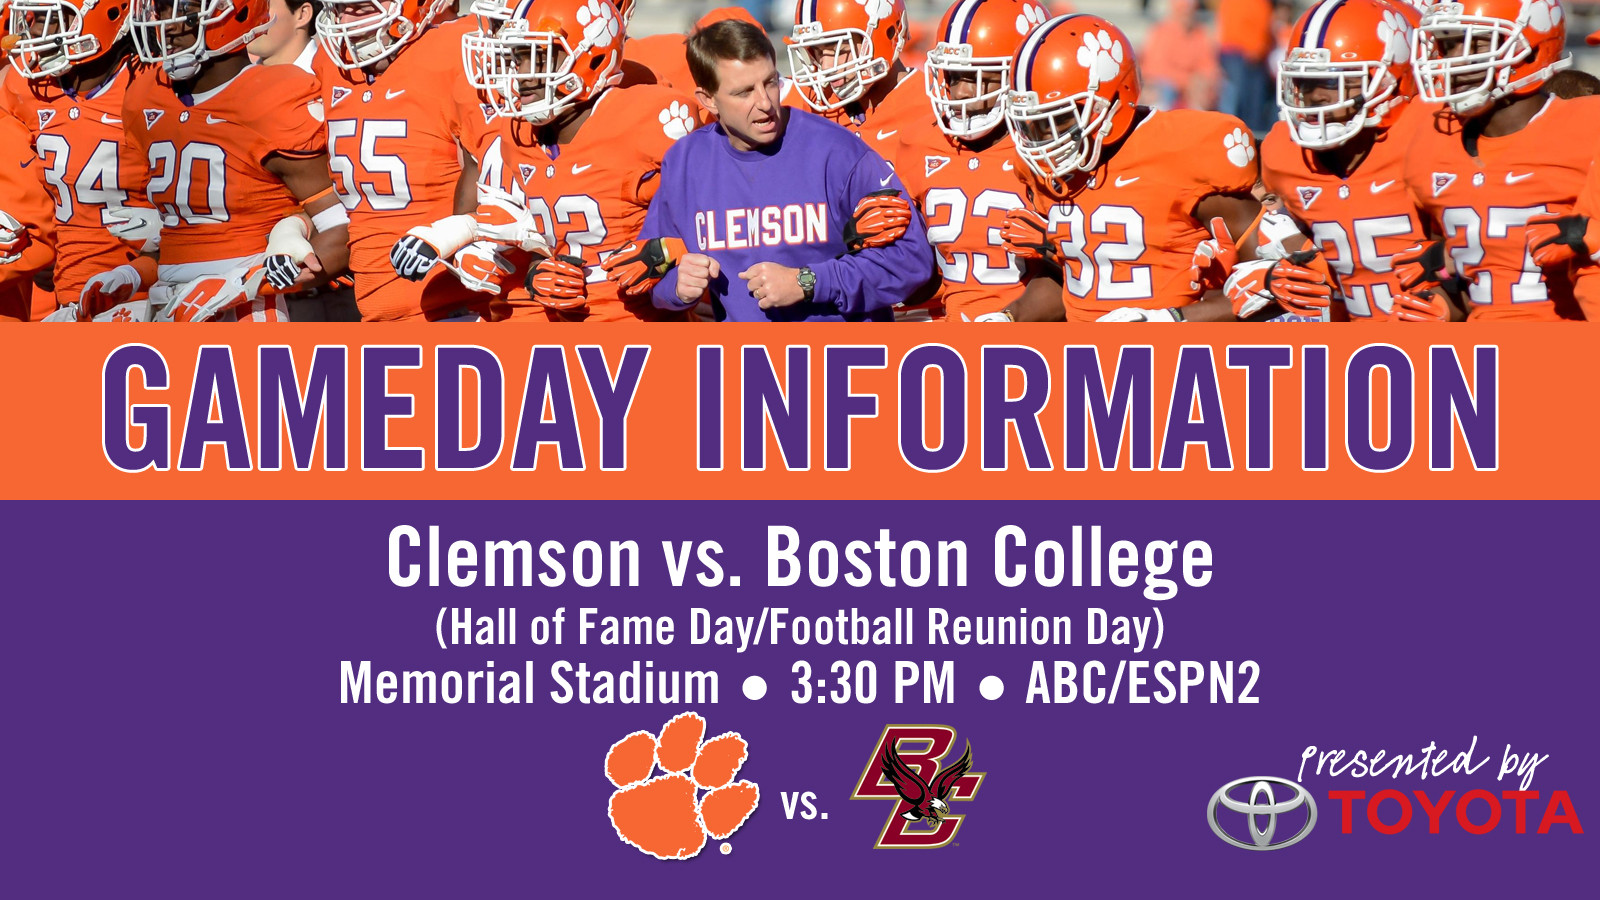 Clemson vs. Boston College Football Gameday Information Guide